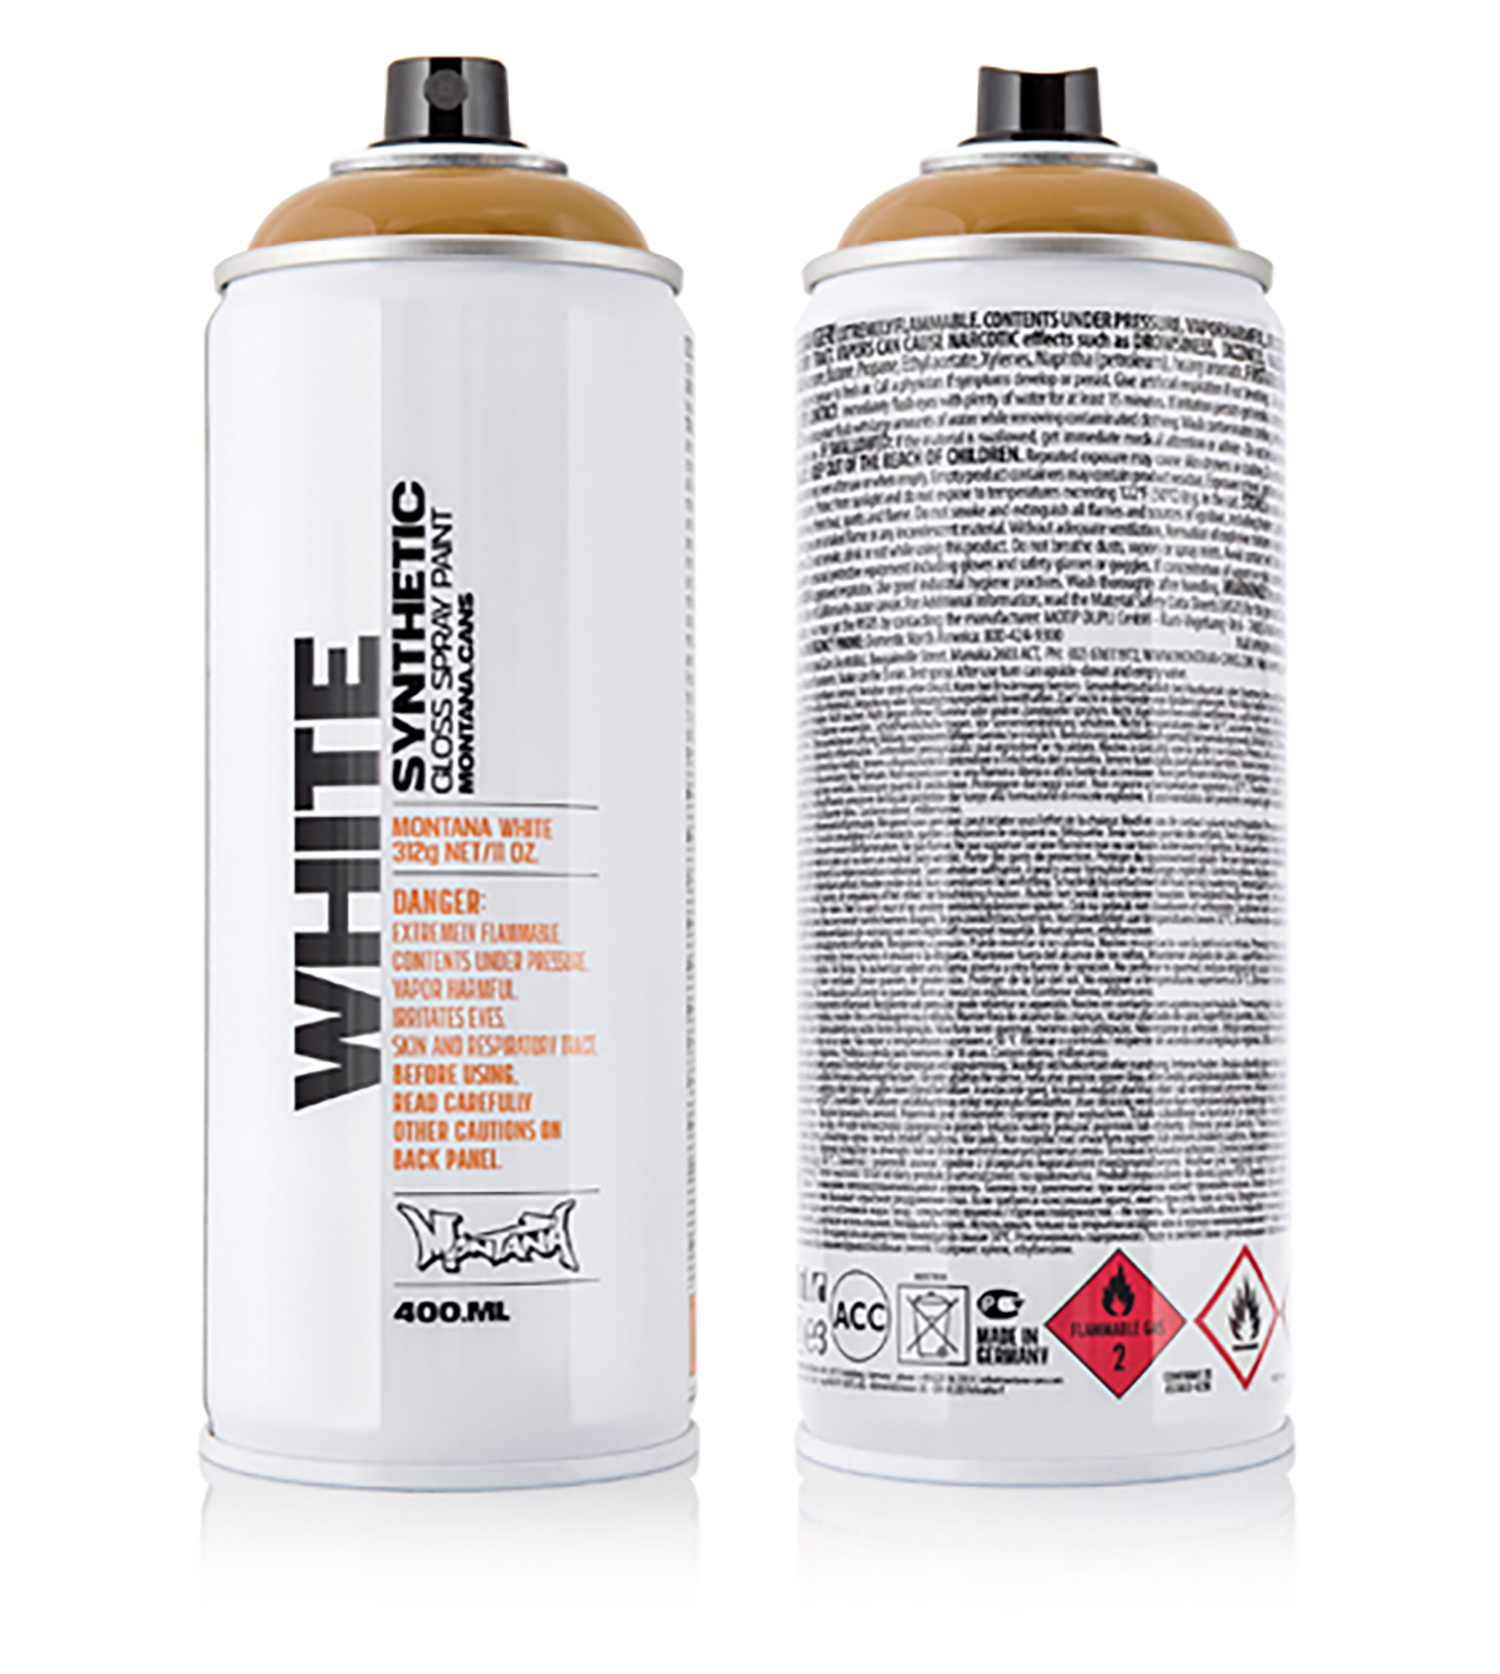 MONTANA-WHITE-SPRAY-400ML-8030